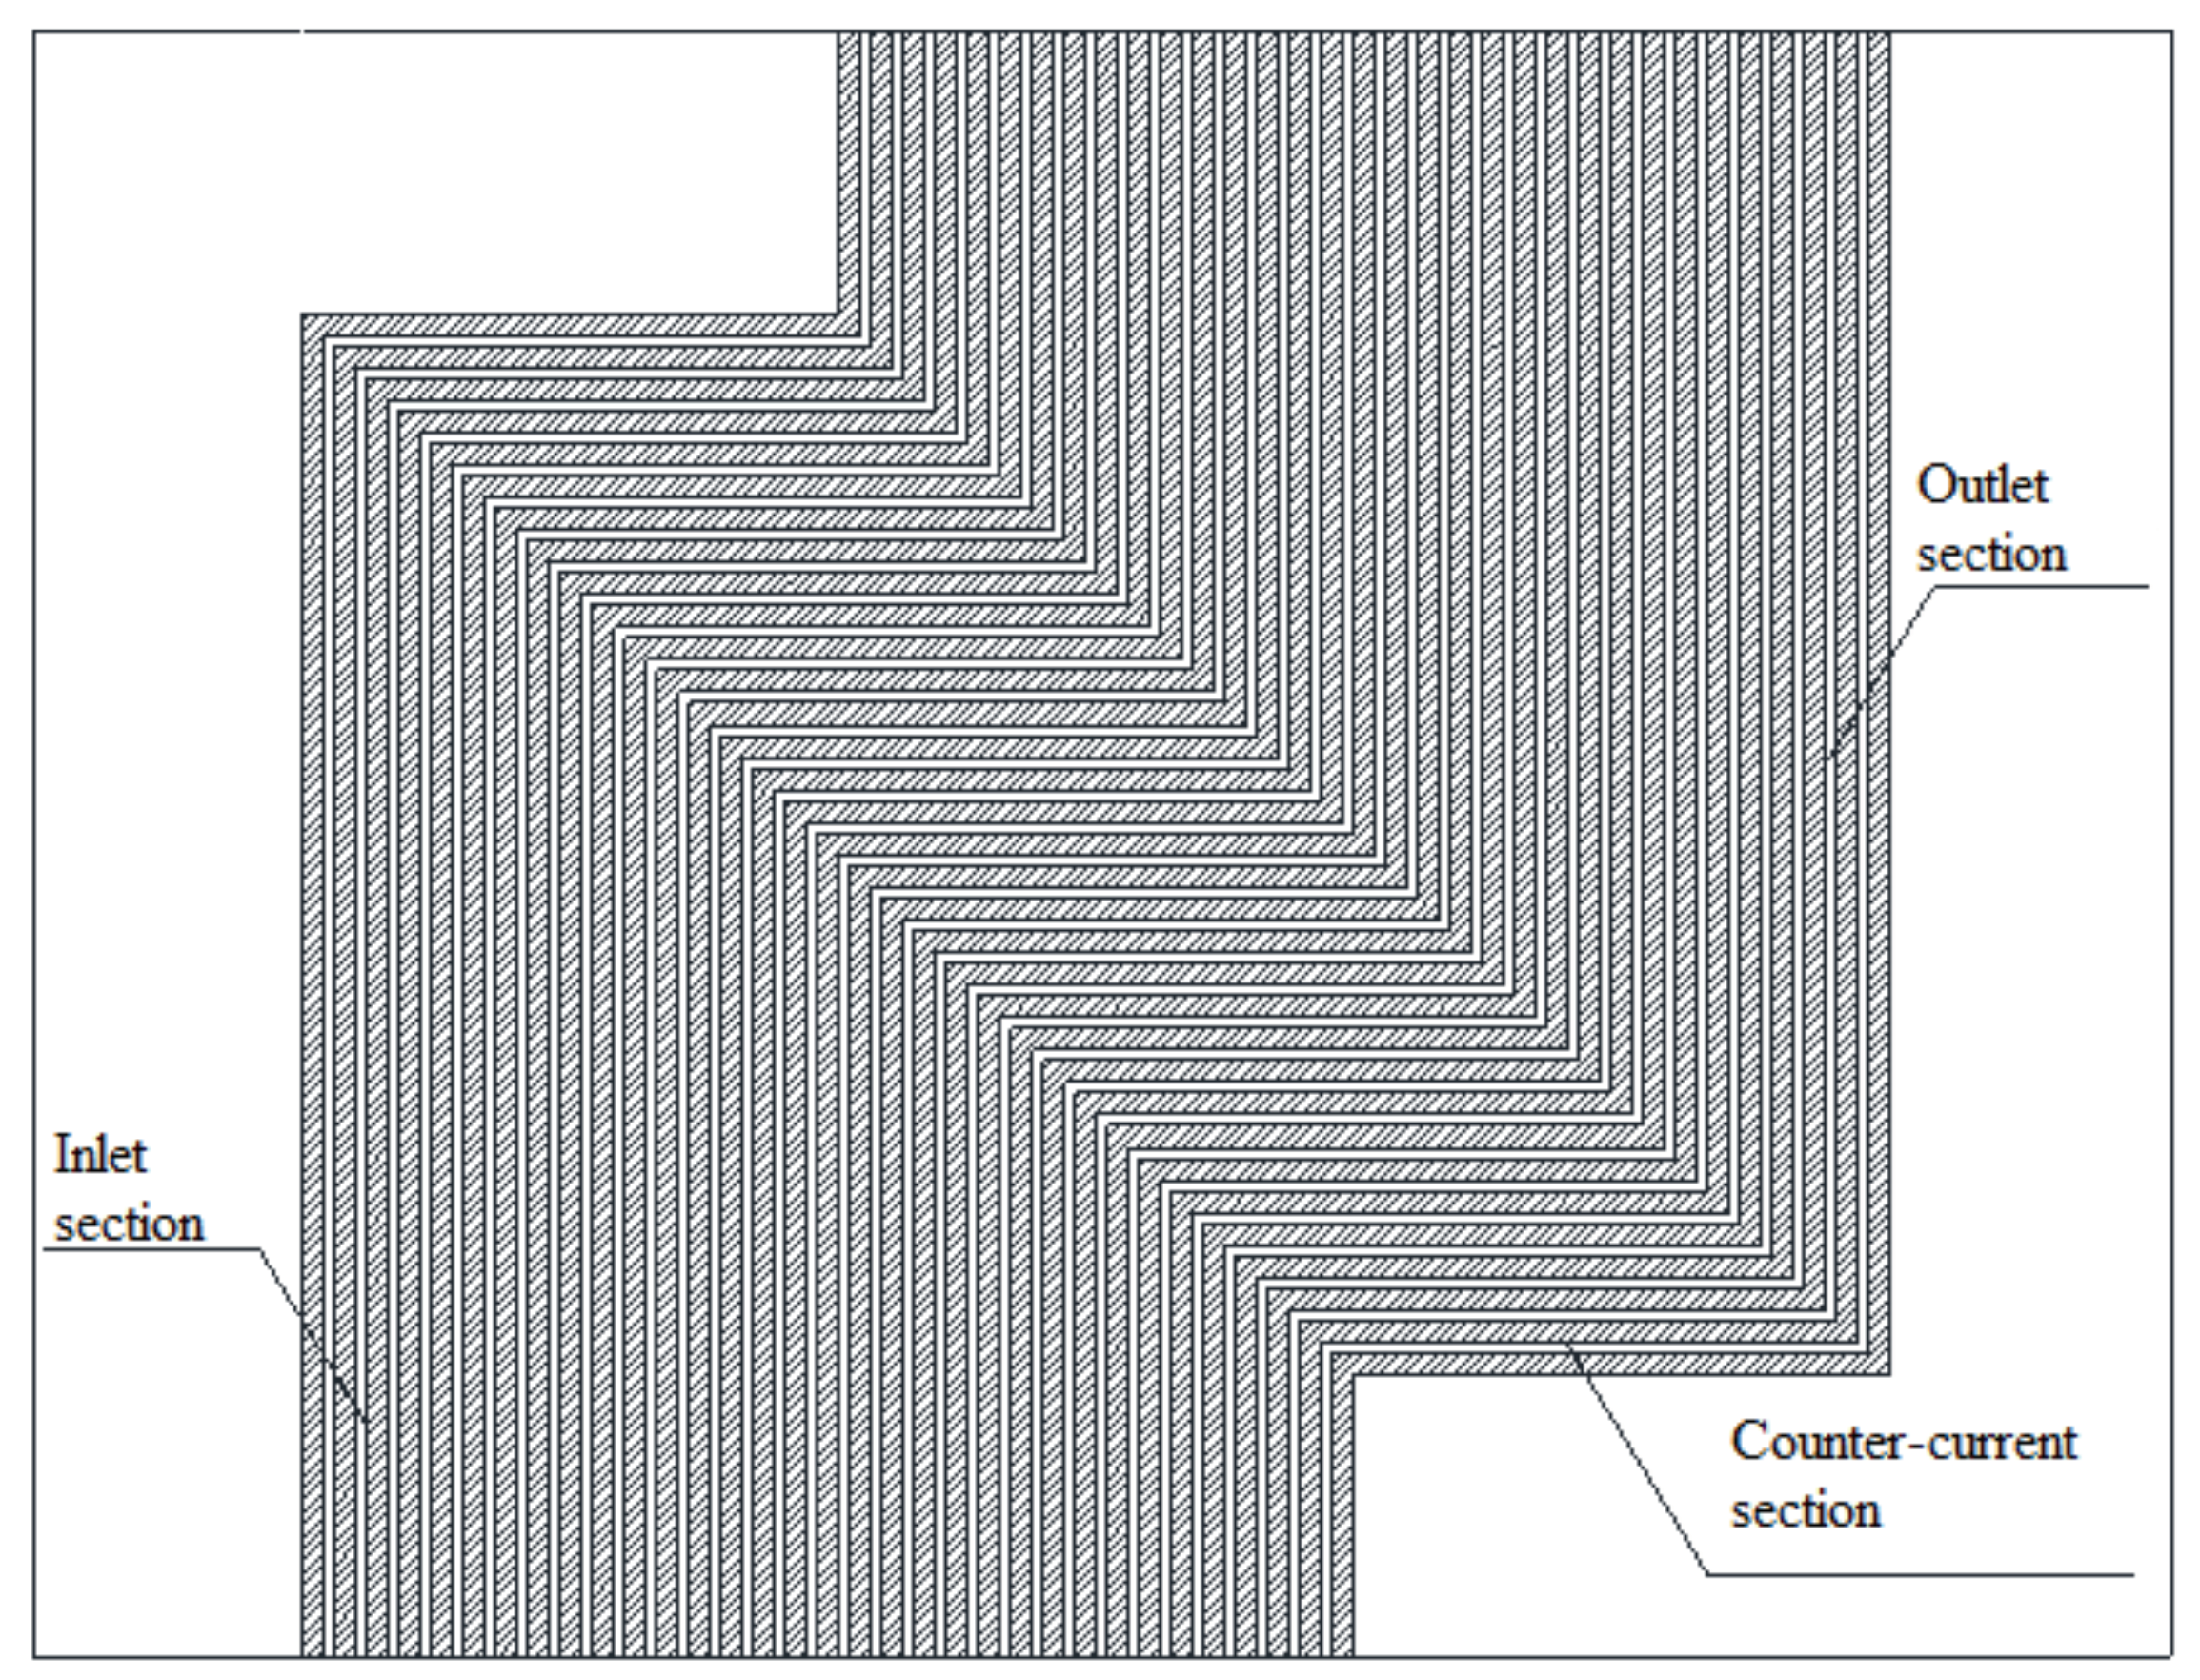 Symmetry Free Full Text Analysis Exploring The Uniformity Of Flow Distribution In Multi Channels For The Application Of Printed Circuit Heat Exchangers Html